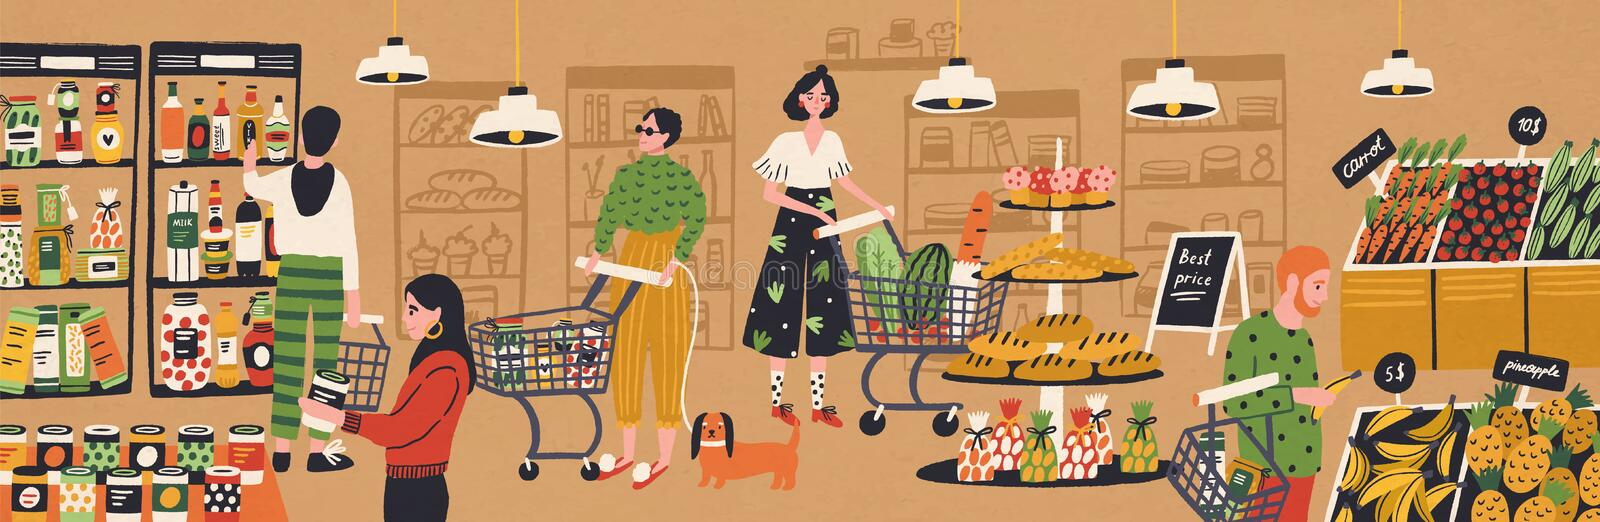 Men and women with shopping carts and baskets choosing and buying products at grocery store. People purchasing food at royalty free illustration